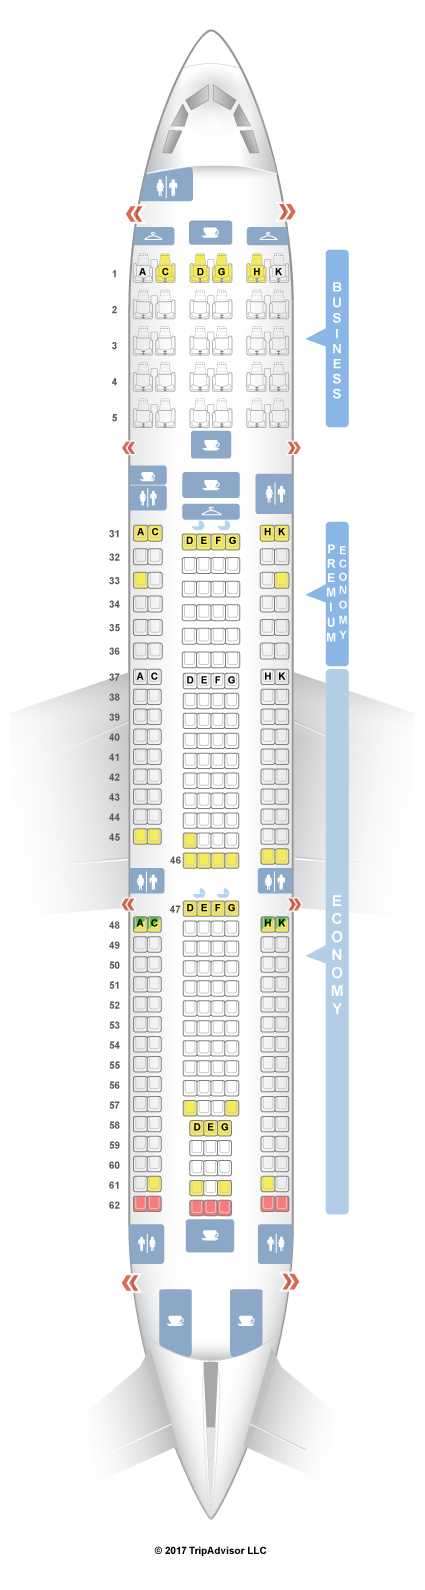 Boeing 757 Seating Chart Bing Images